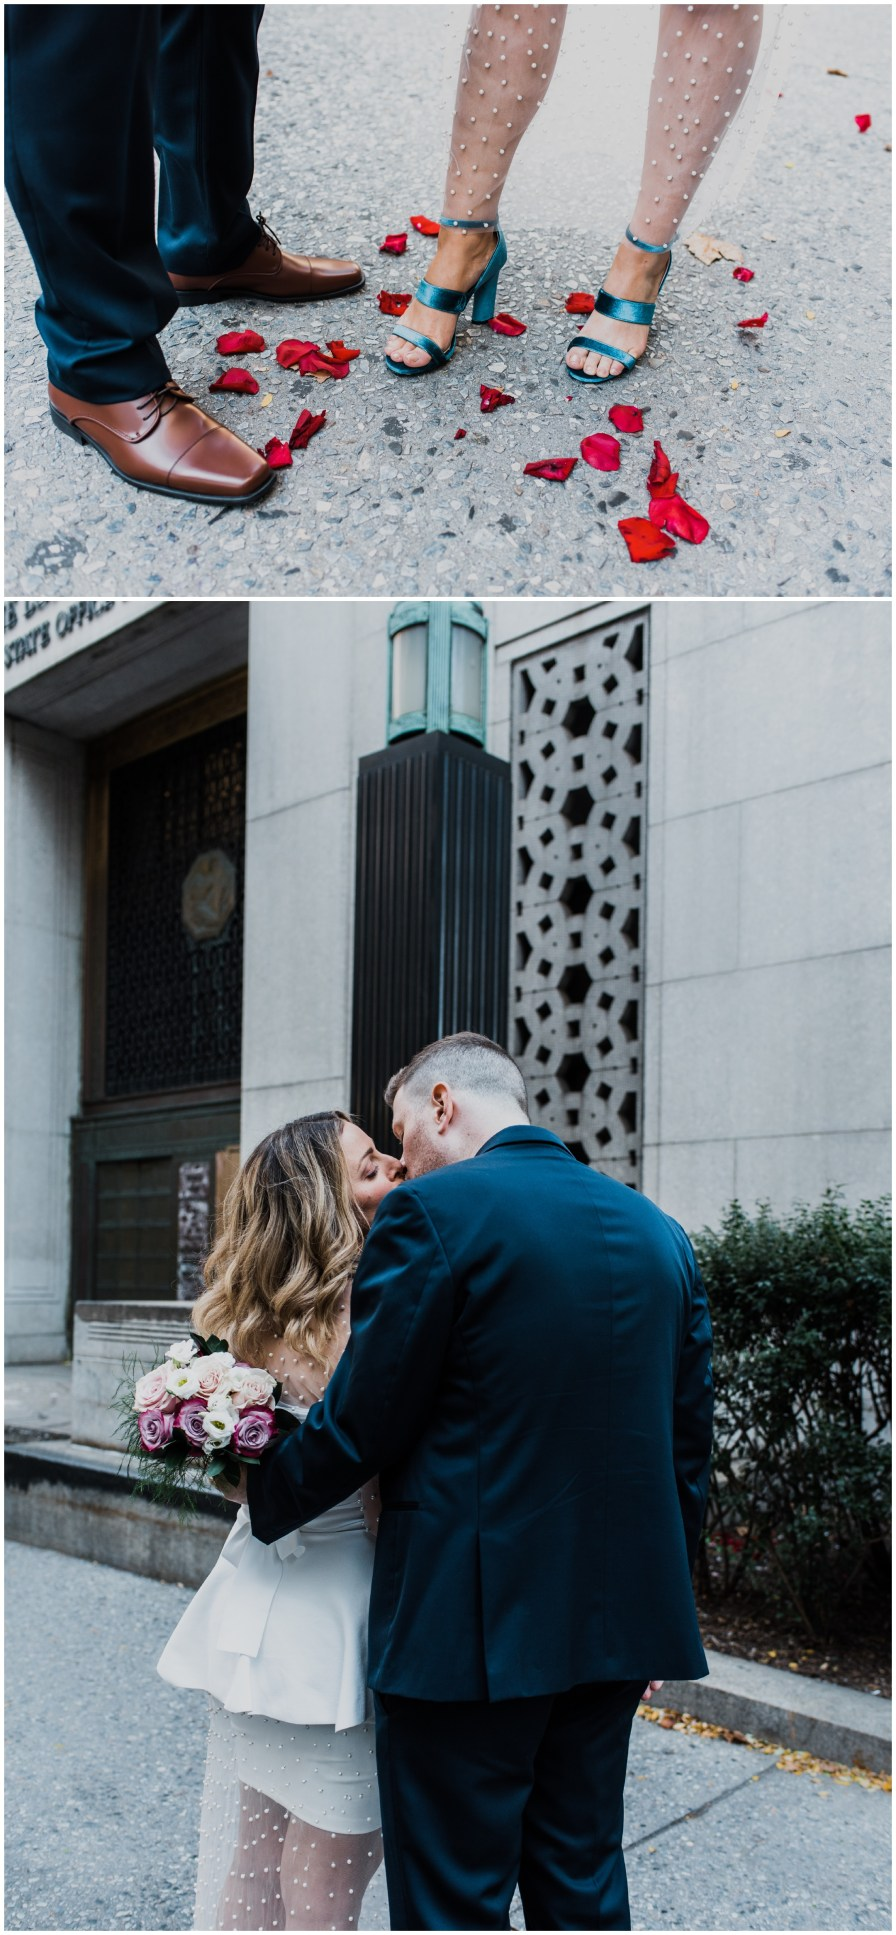 2018 04 16 0050 - Em + James, New York City Elopement